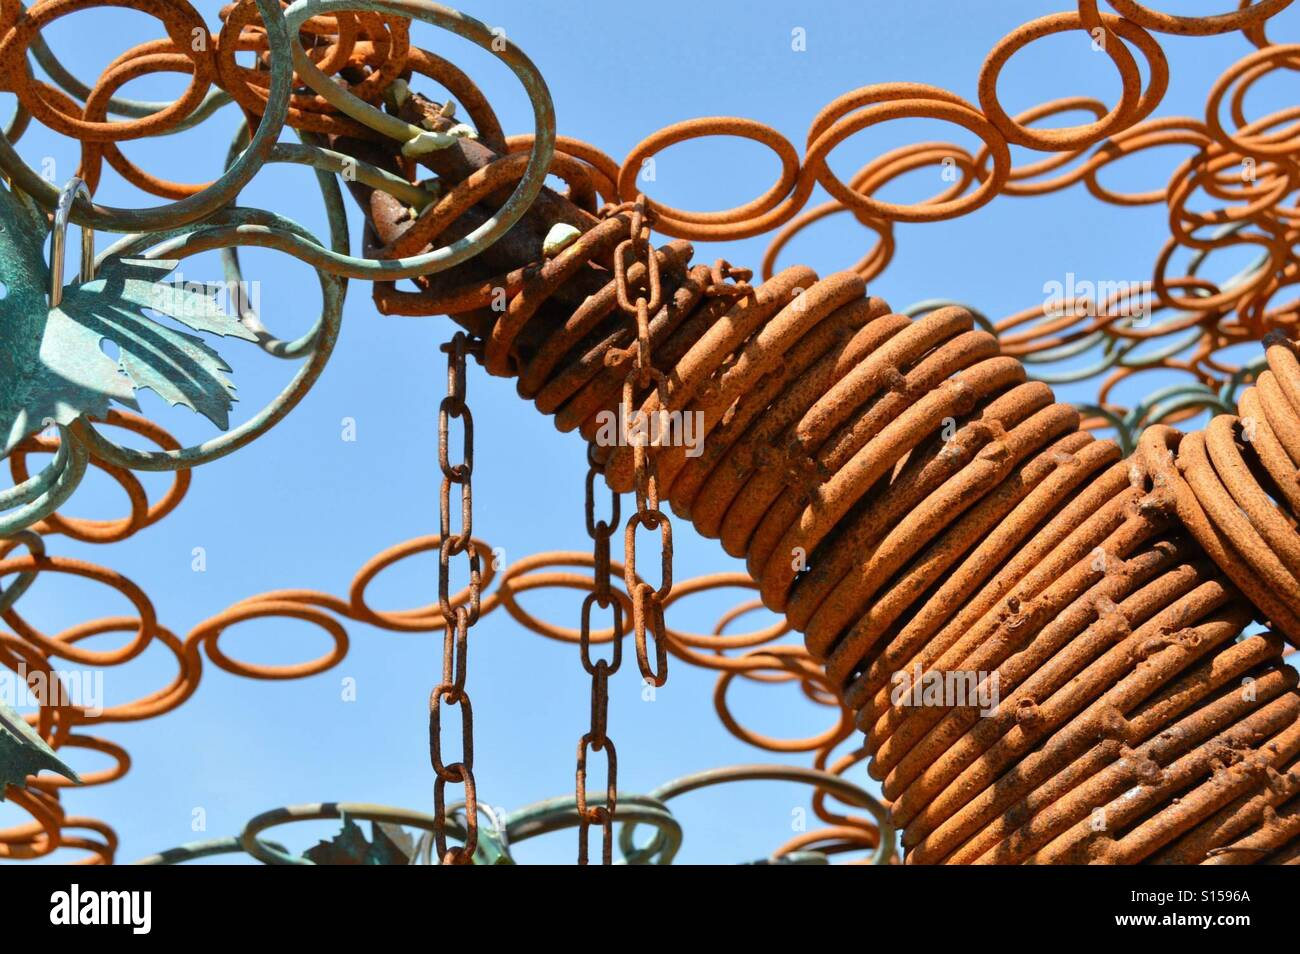 ahafenanlage stock rivet rusted crane harbours photo rust harbor rings ladder old riveted